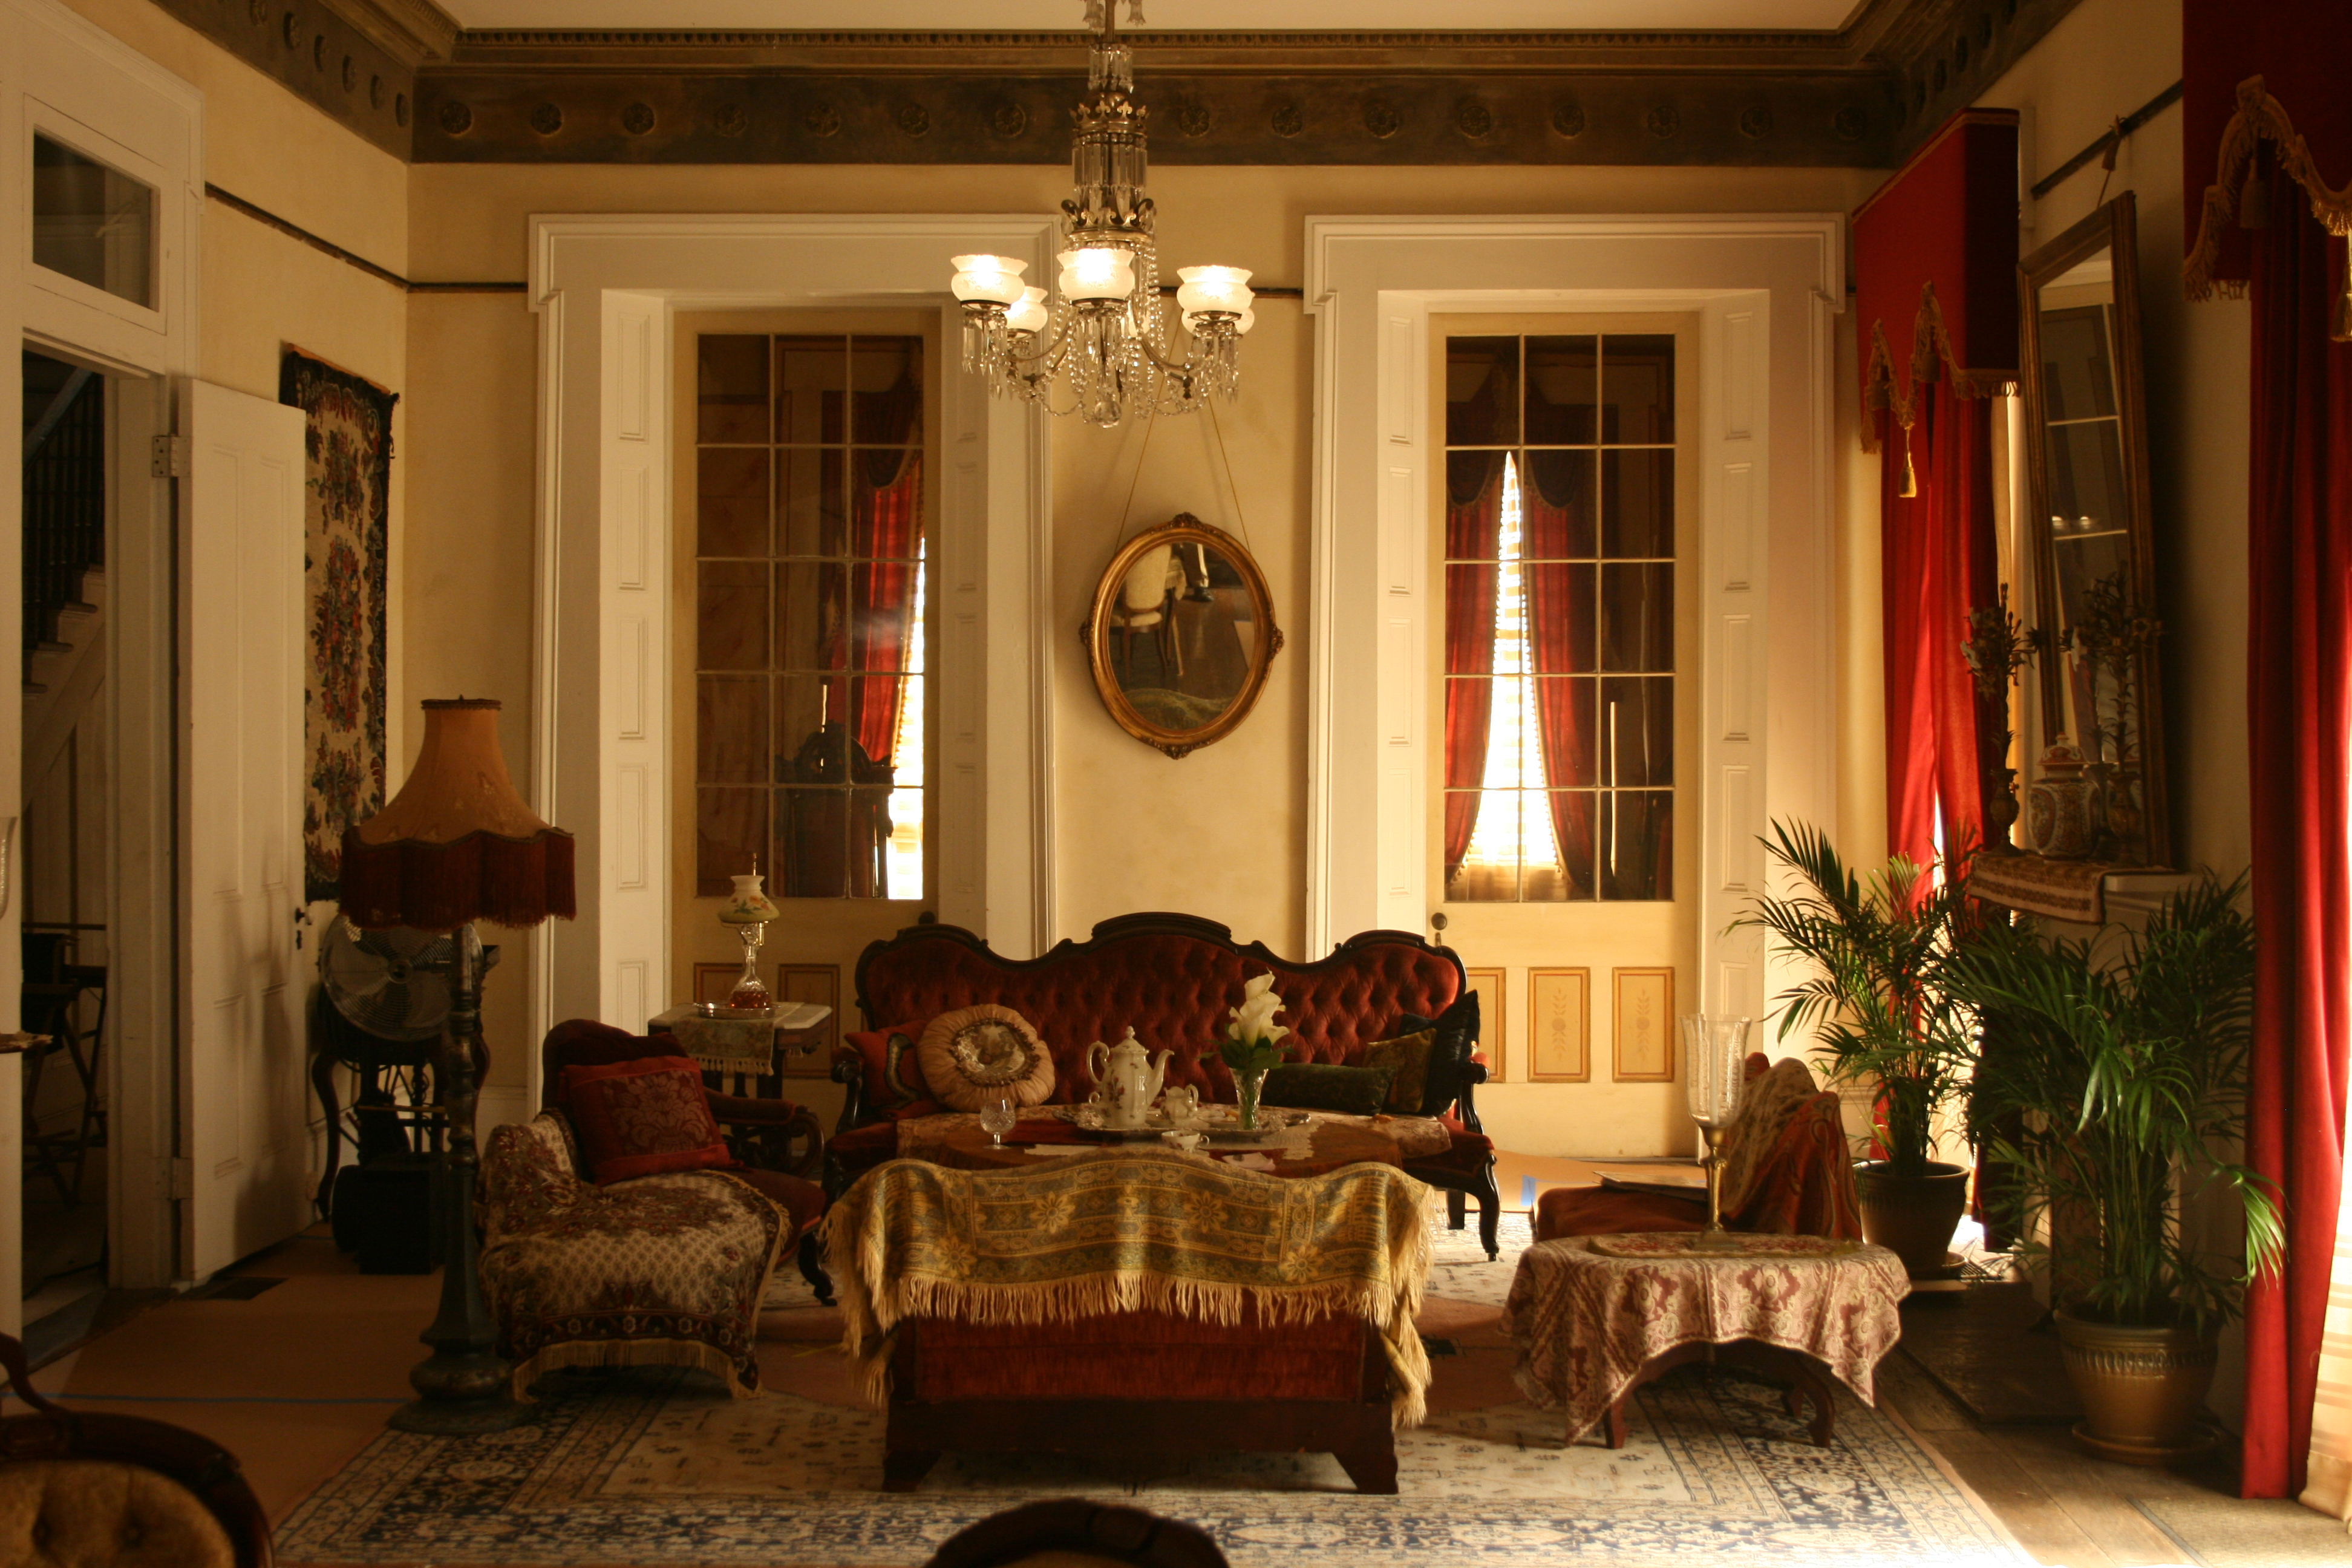 Int. Drawing Room Set